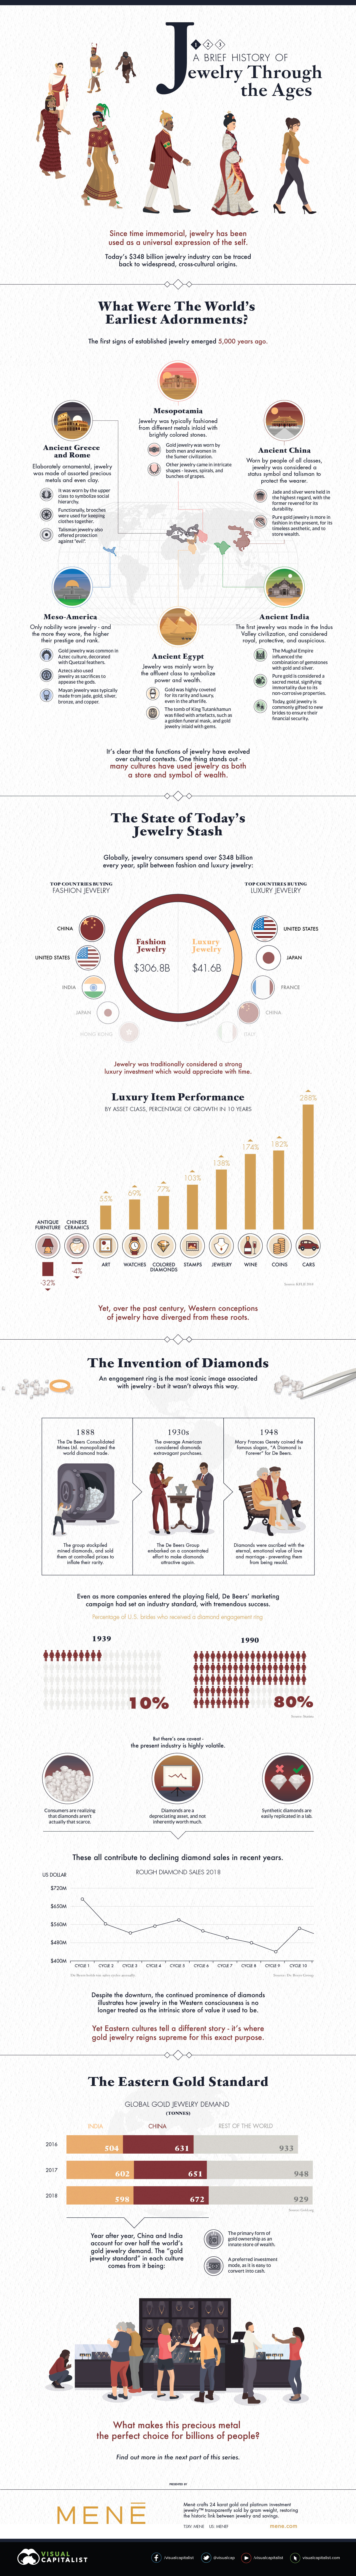 A Brief History of Jewelry Through the Ages